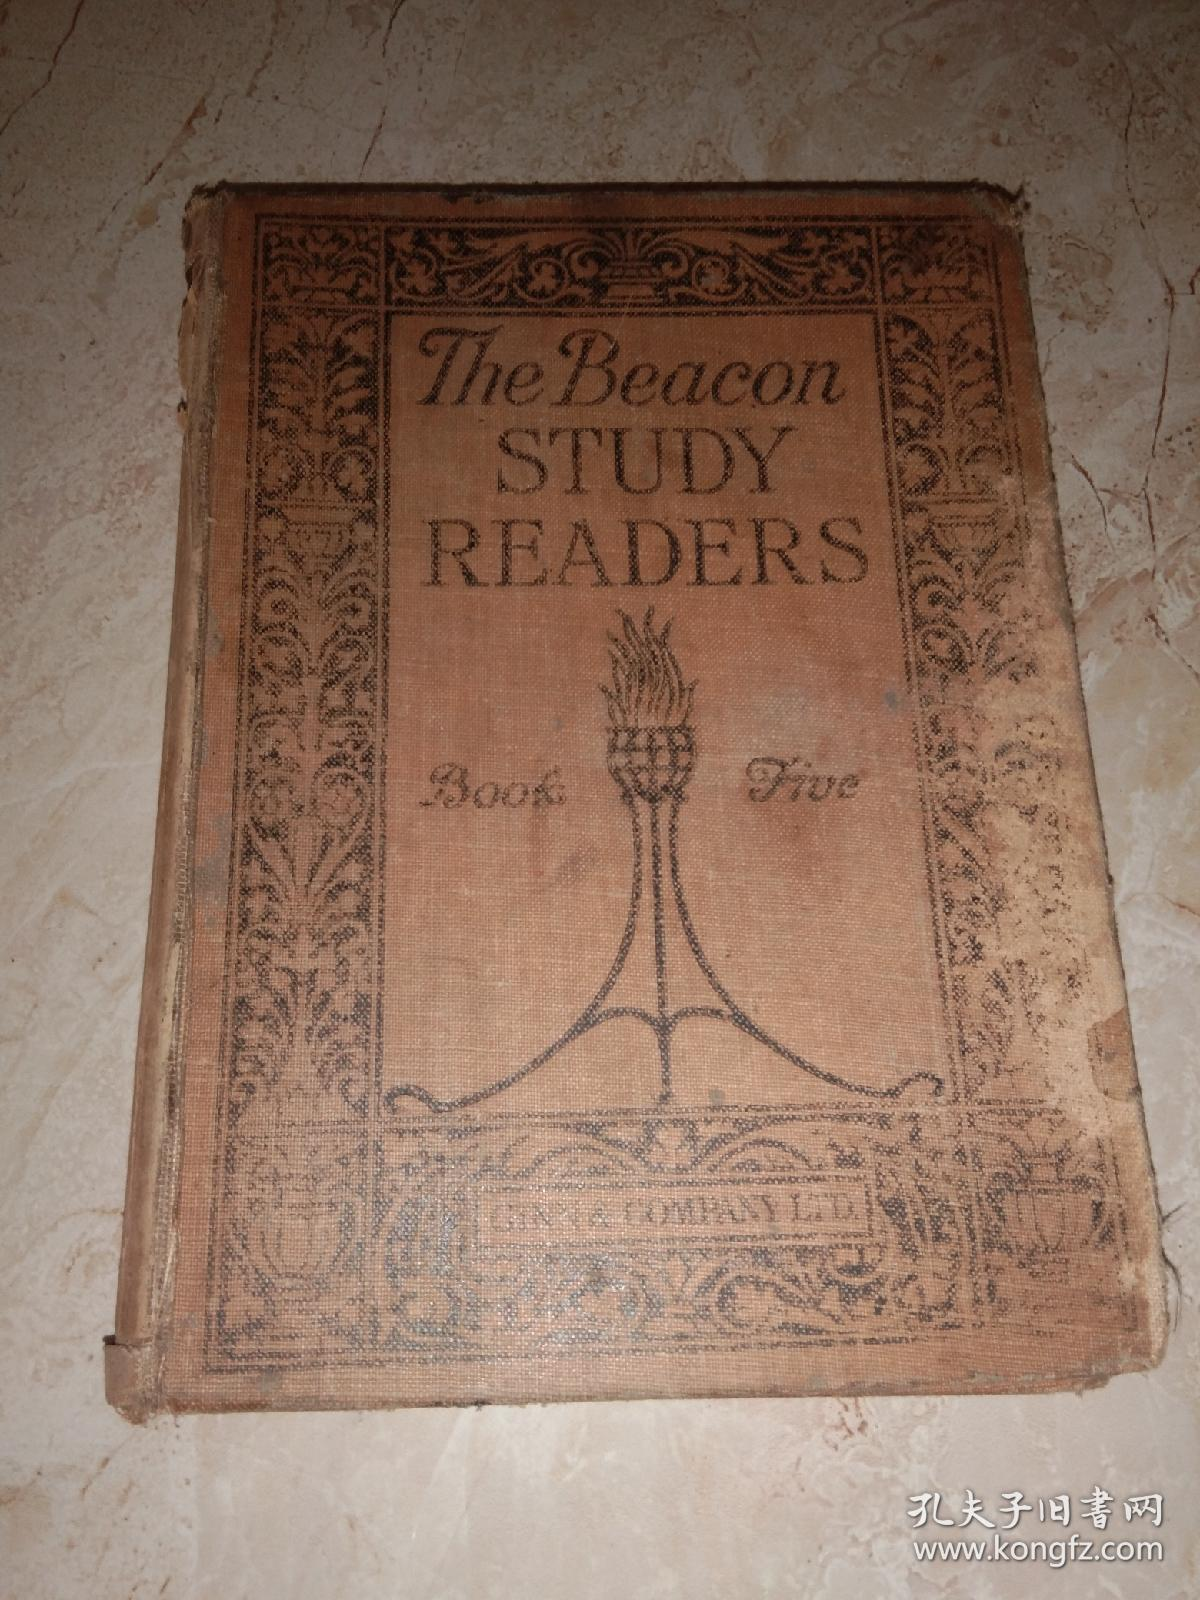 The Beacon STUDY READERS Book Four 【英文】